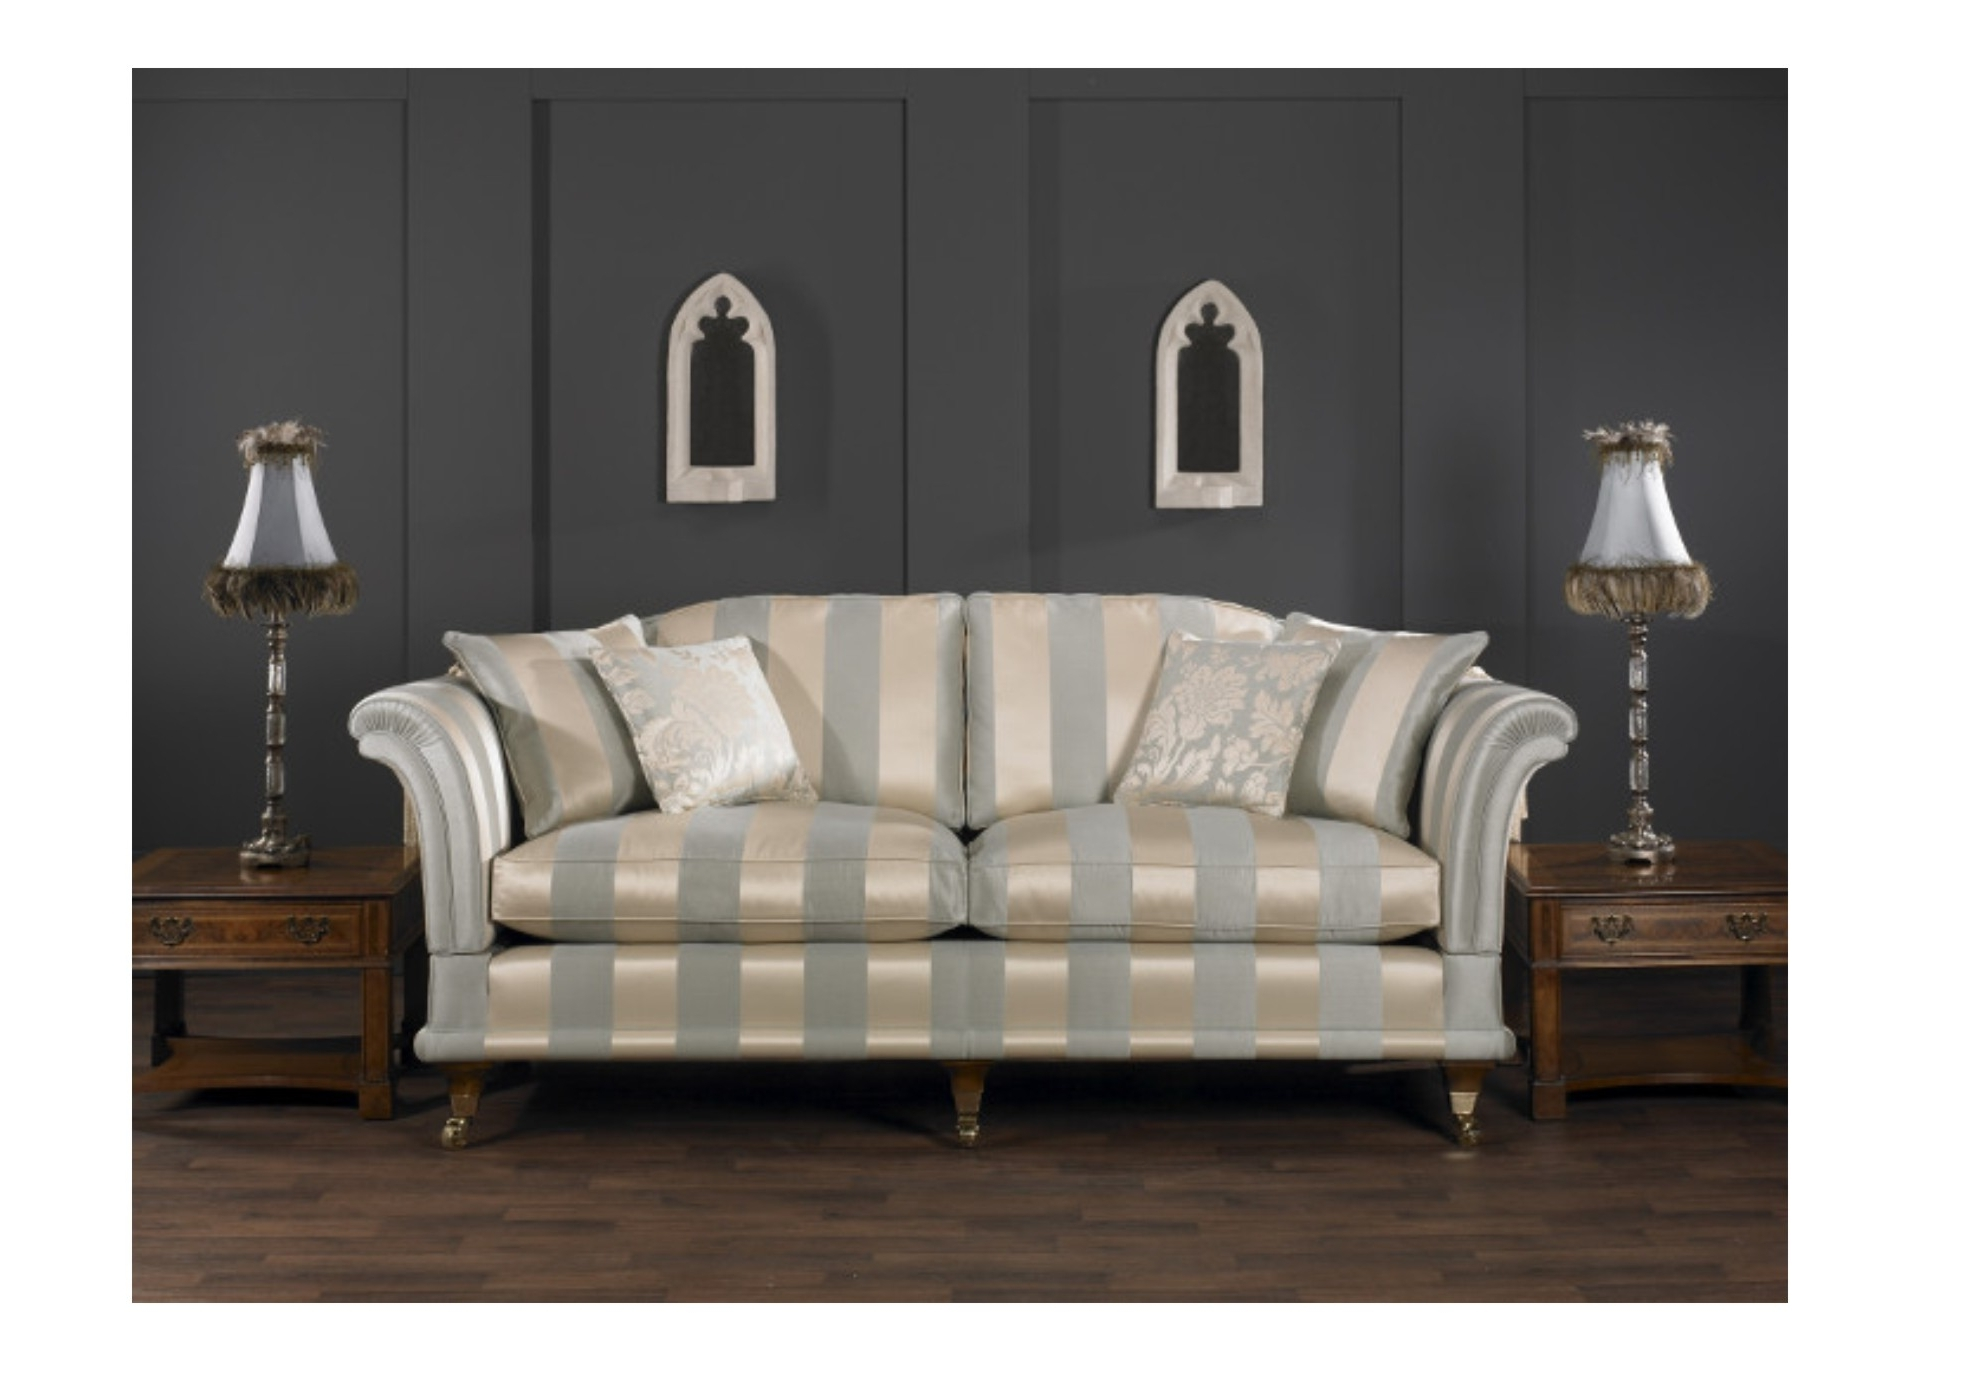 Florence Large Sofa – Upholstery Large Small Medium Sofa Extensive Within Current Florence Medium Sofas (View 6 of 20)